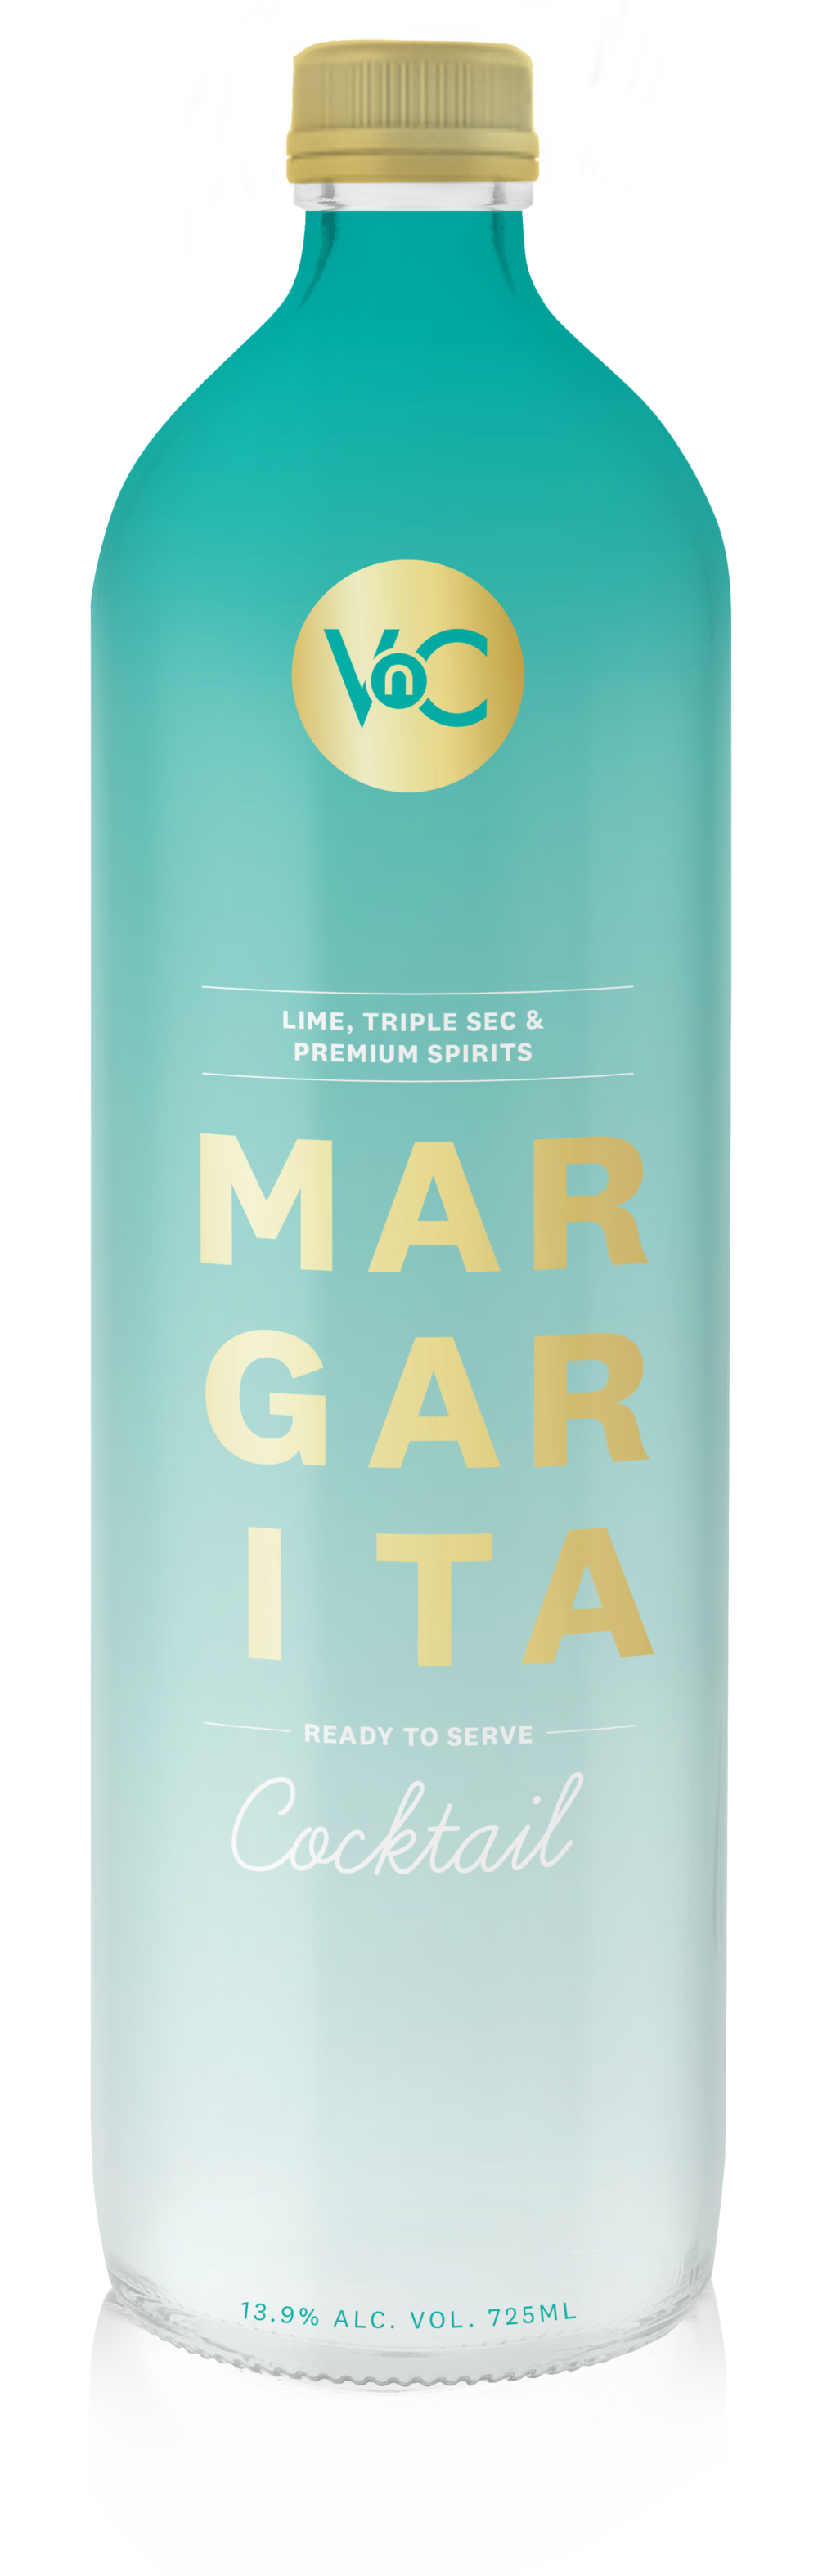 725ml_Margarita_CC.png